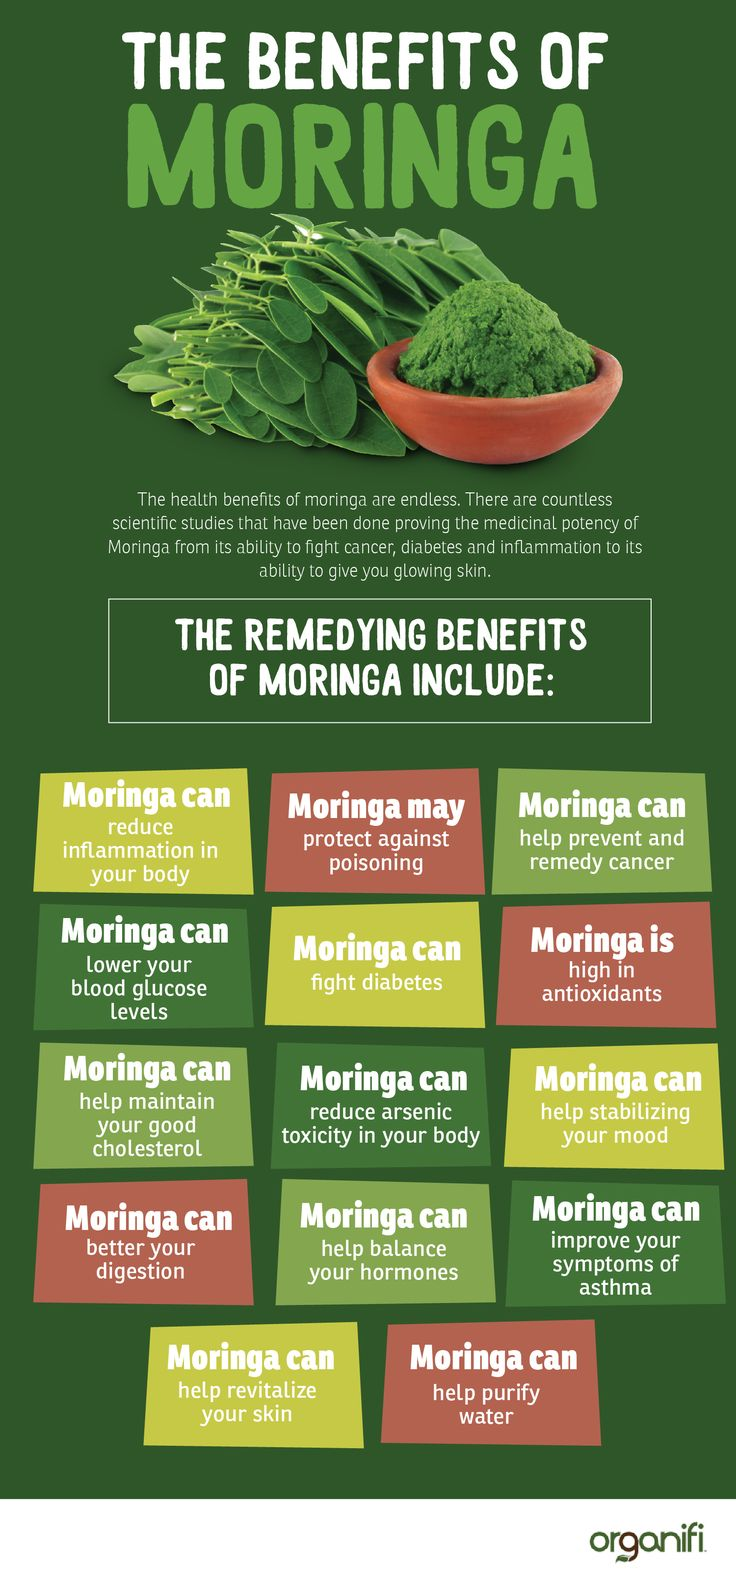 Moringa is a tree that's sometimes called the Tree of Life. It has been used as natural medicine in many cultures because of its antioxidant and inflammation reducing properties. When the remedying benefits of a plant have been proven for centuries, it makes you curious, doesn't it?